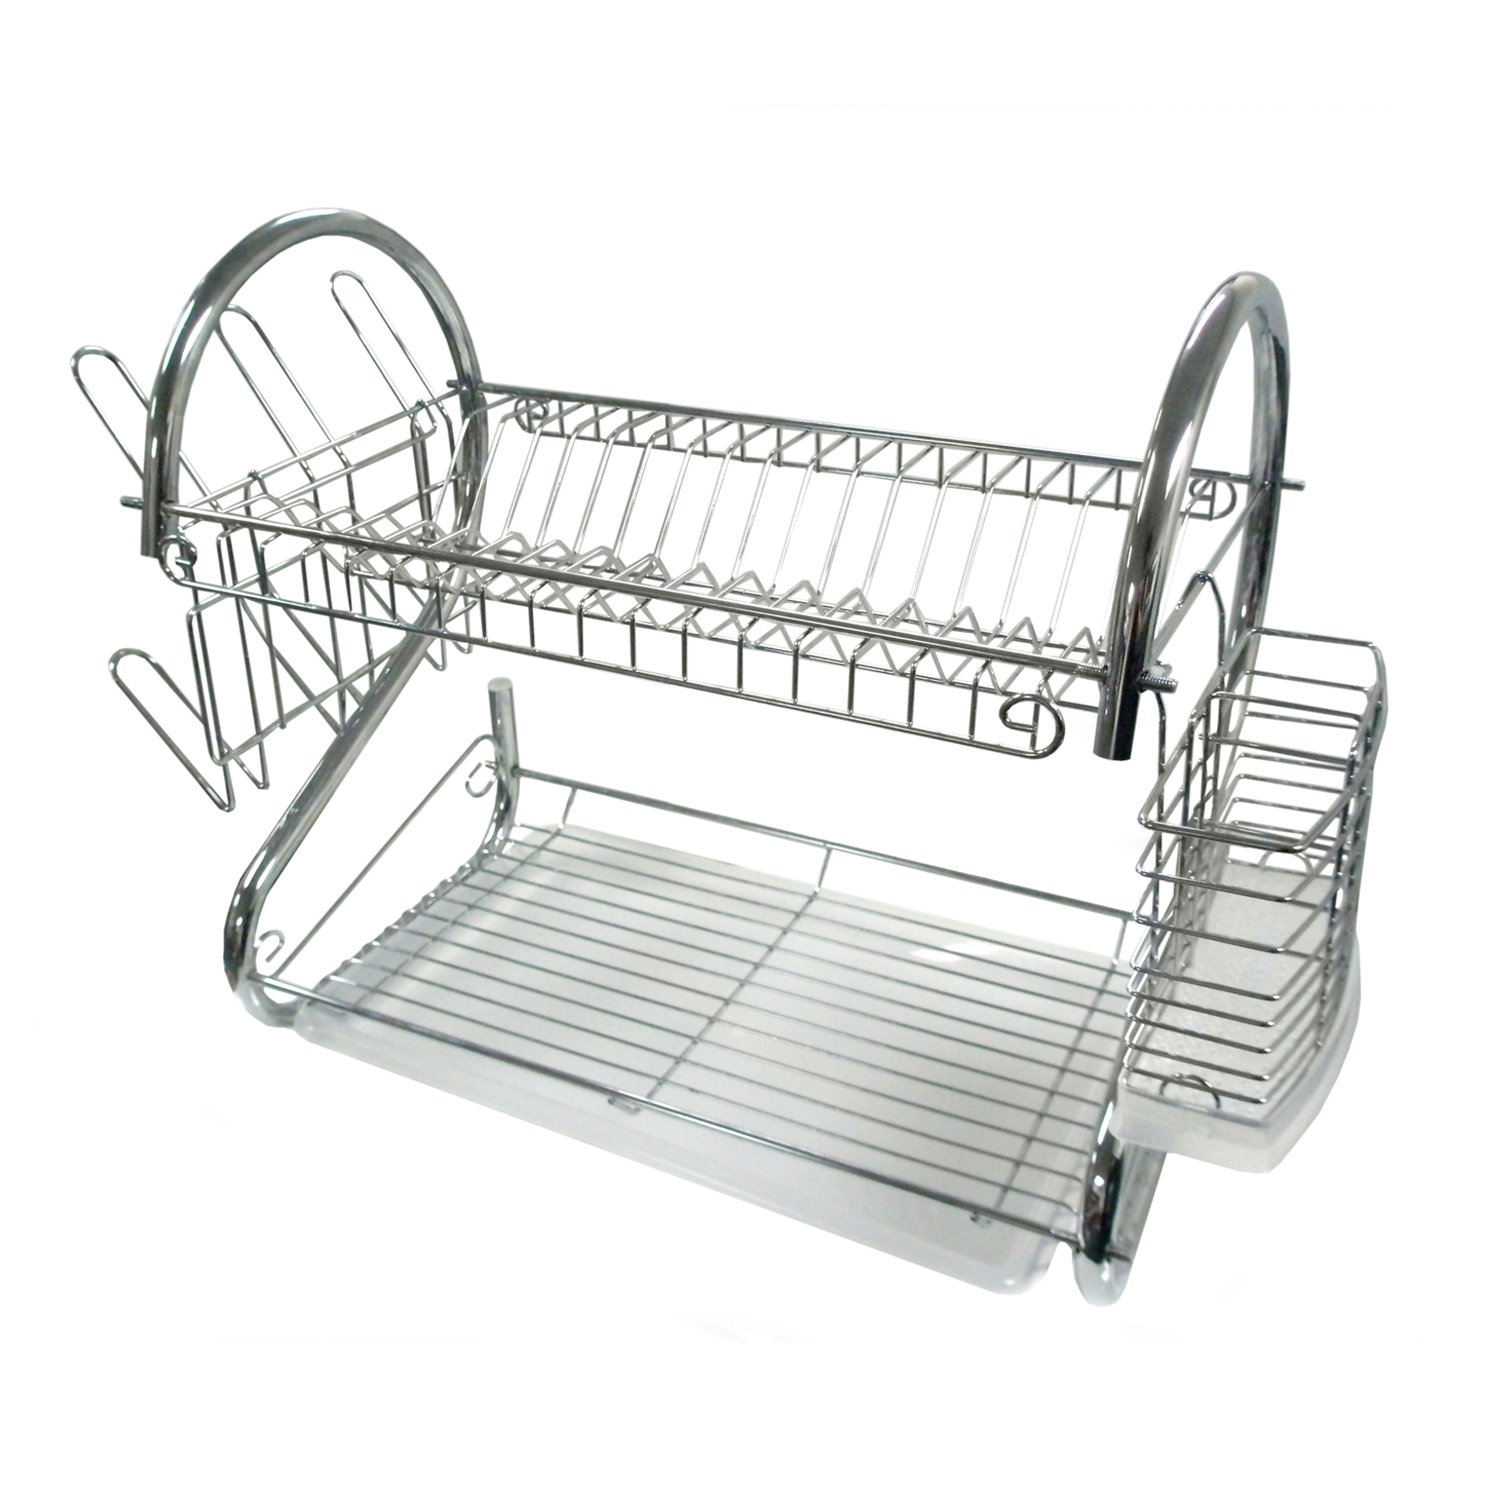 Better Chef Dr 16 2 Tier Dish Rack 16 Inch Chrome Ebay